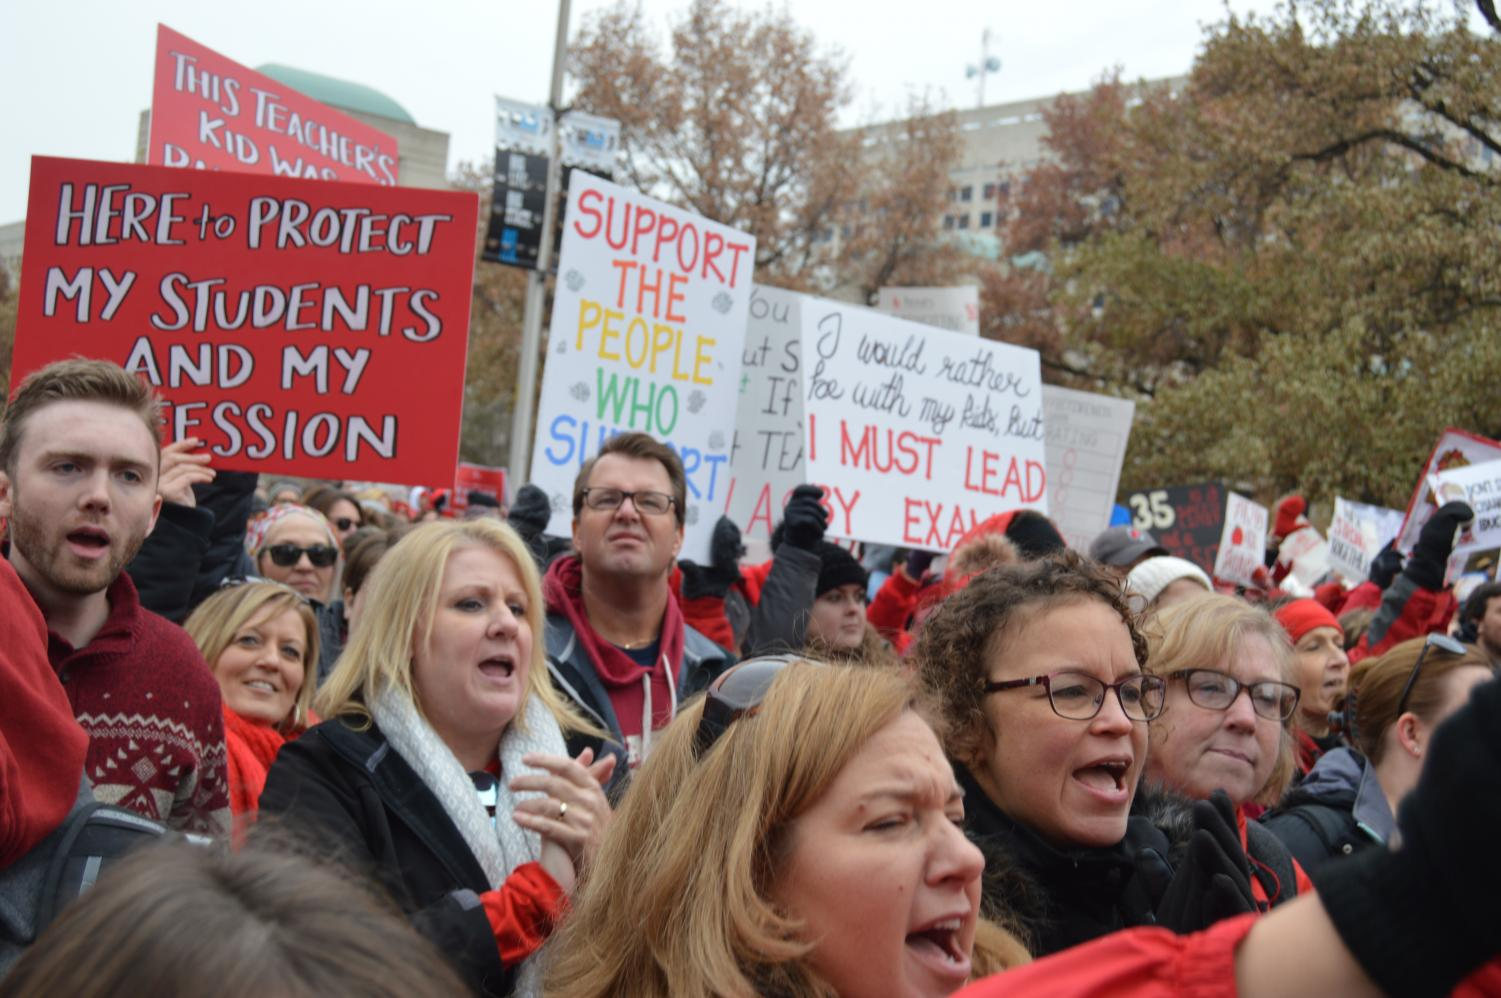 SHS teachers, along with educators from across the state, march around the Statehouse. The march was the second half of the rally, following live music and speeches.